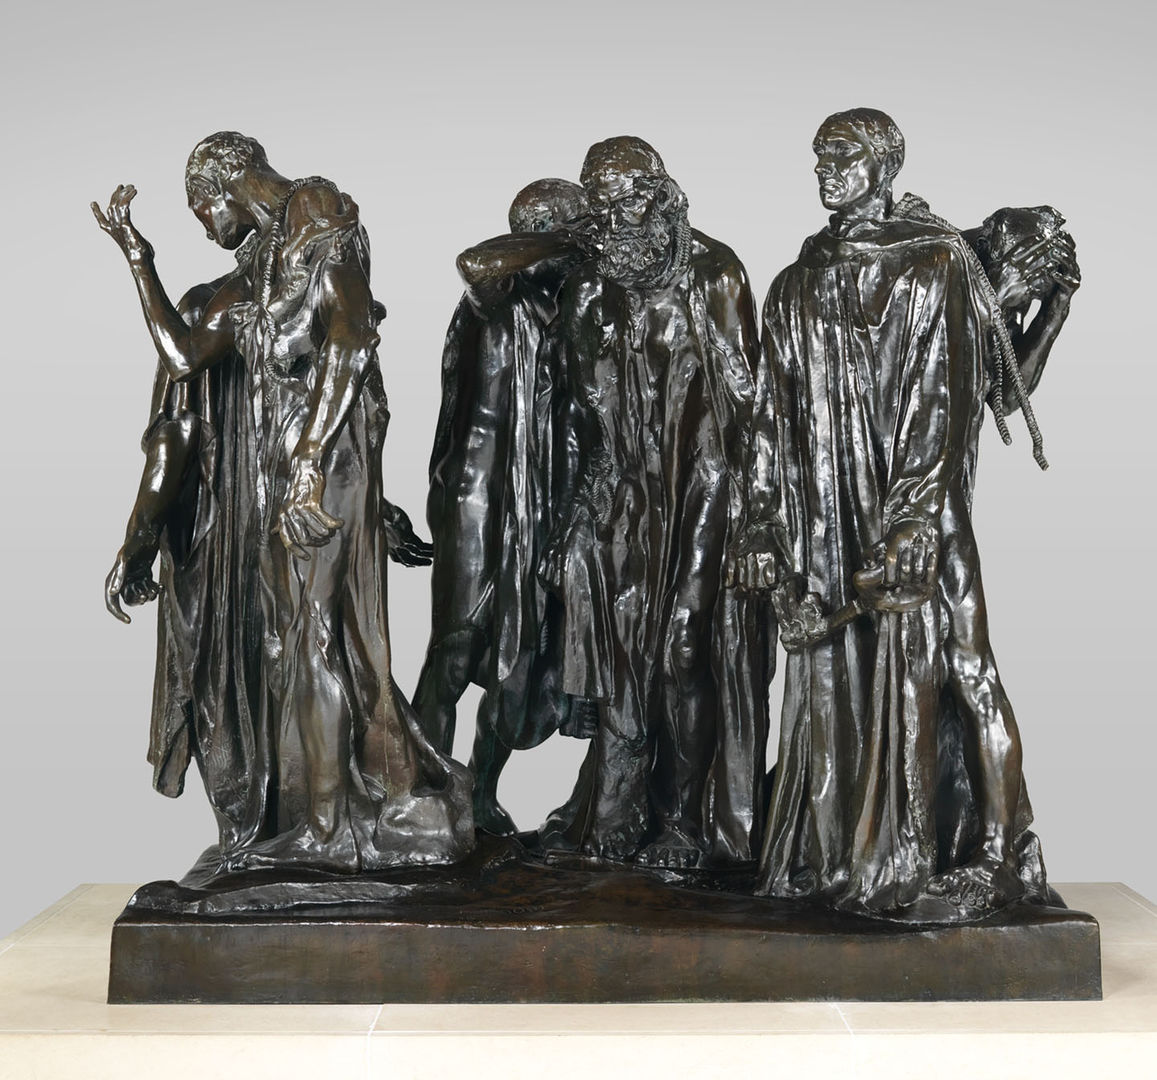 An over-life size bronze sculpture of a group of men chained together in a group, walking in a circle